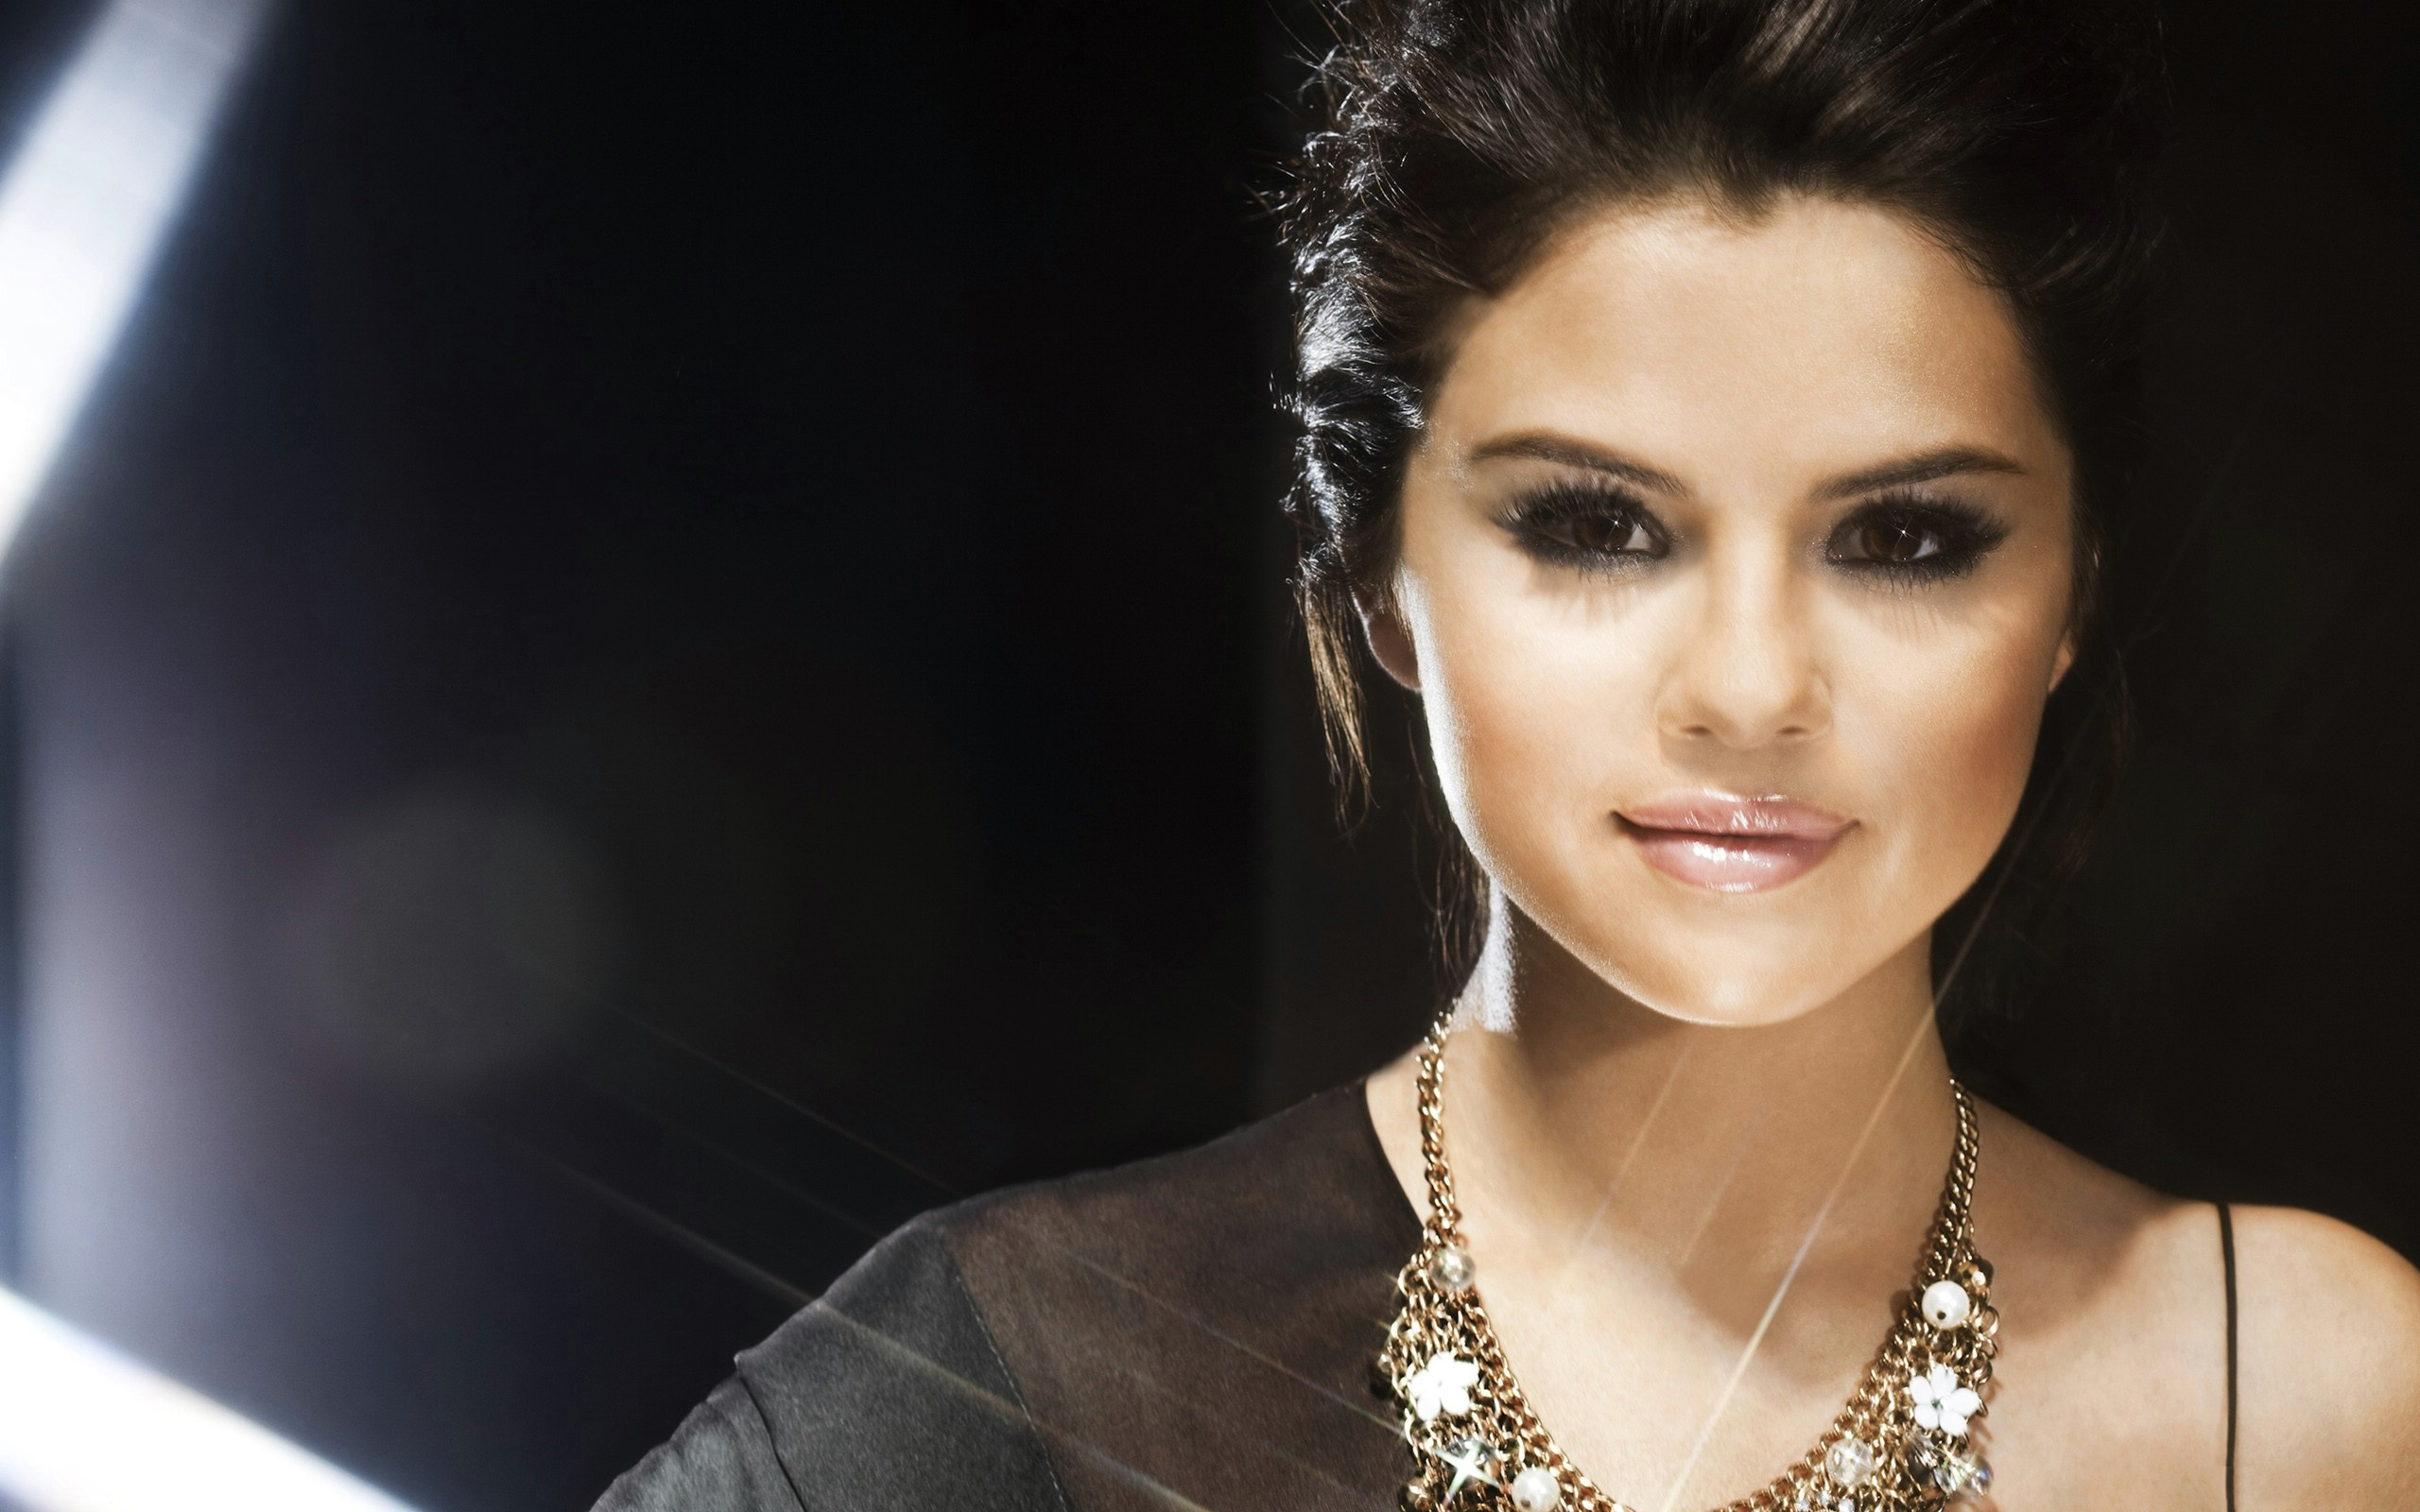 Selena Gomez 105 Wallpapers HD Wallpapers 2560x1600